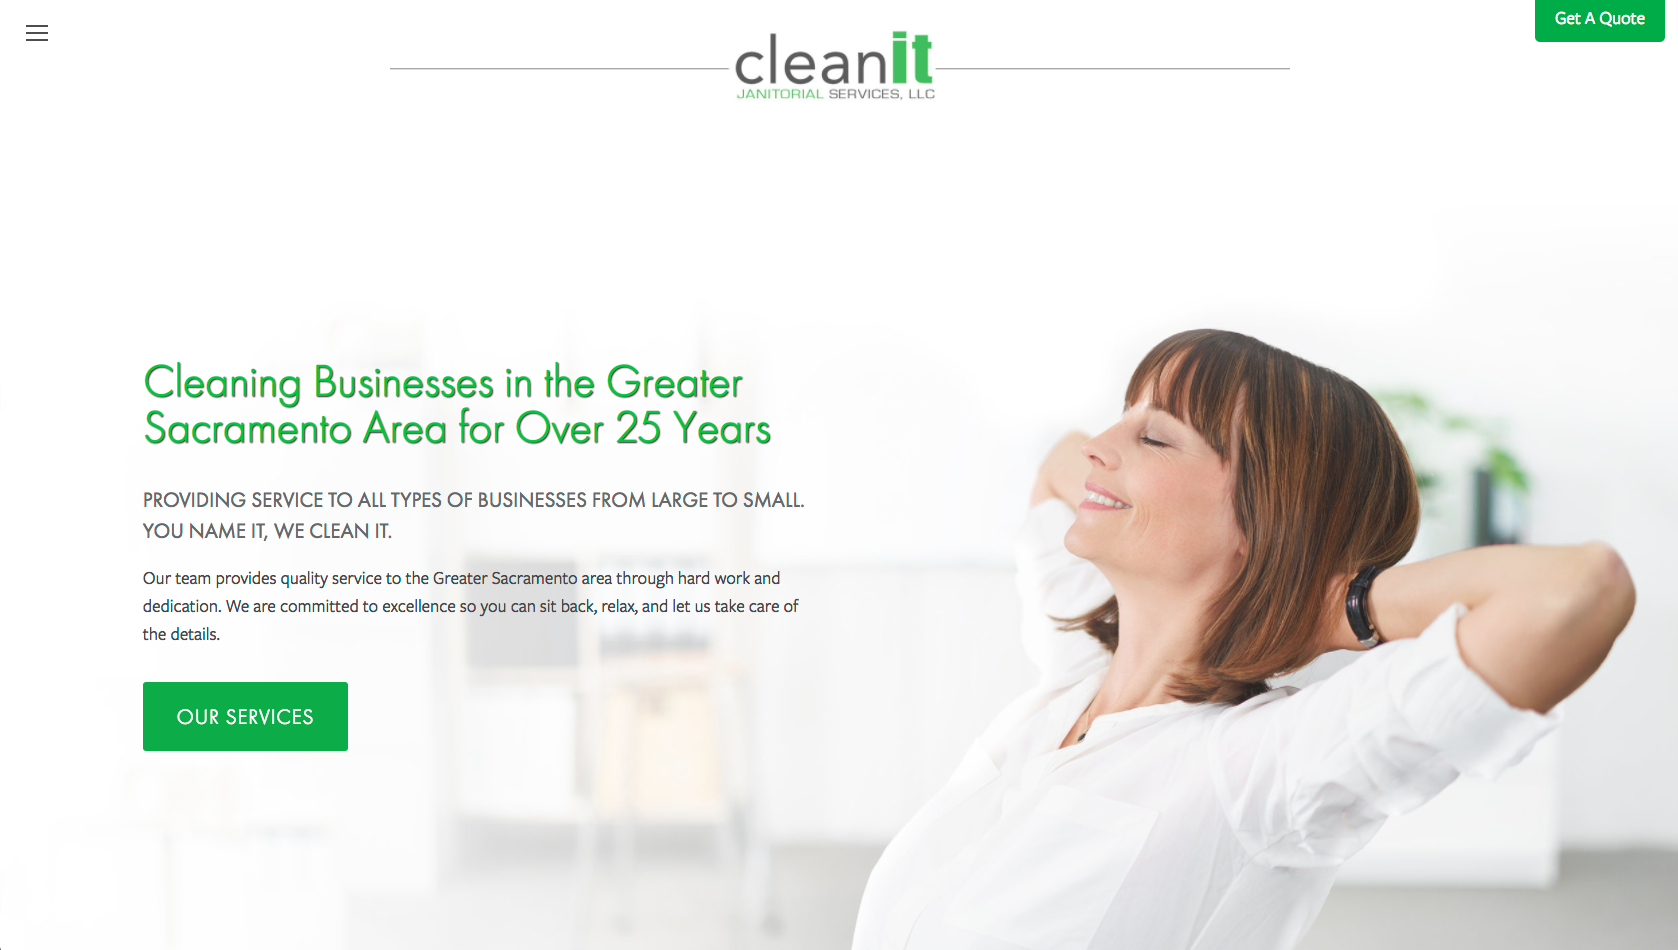 CleanIt Janitorial Services Website